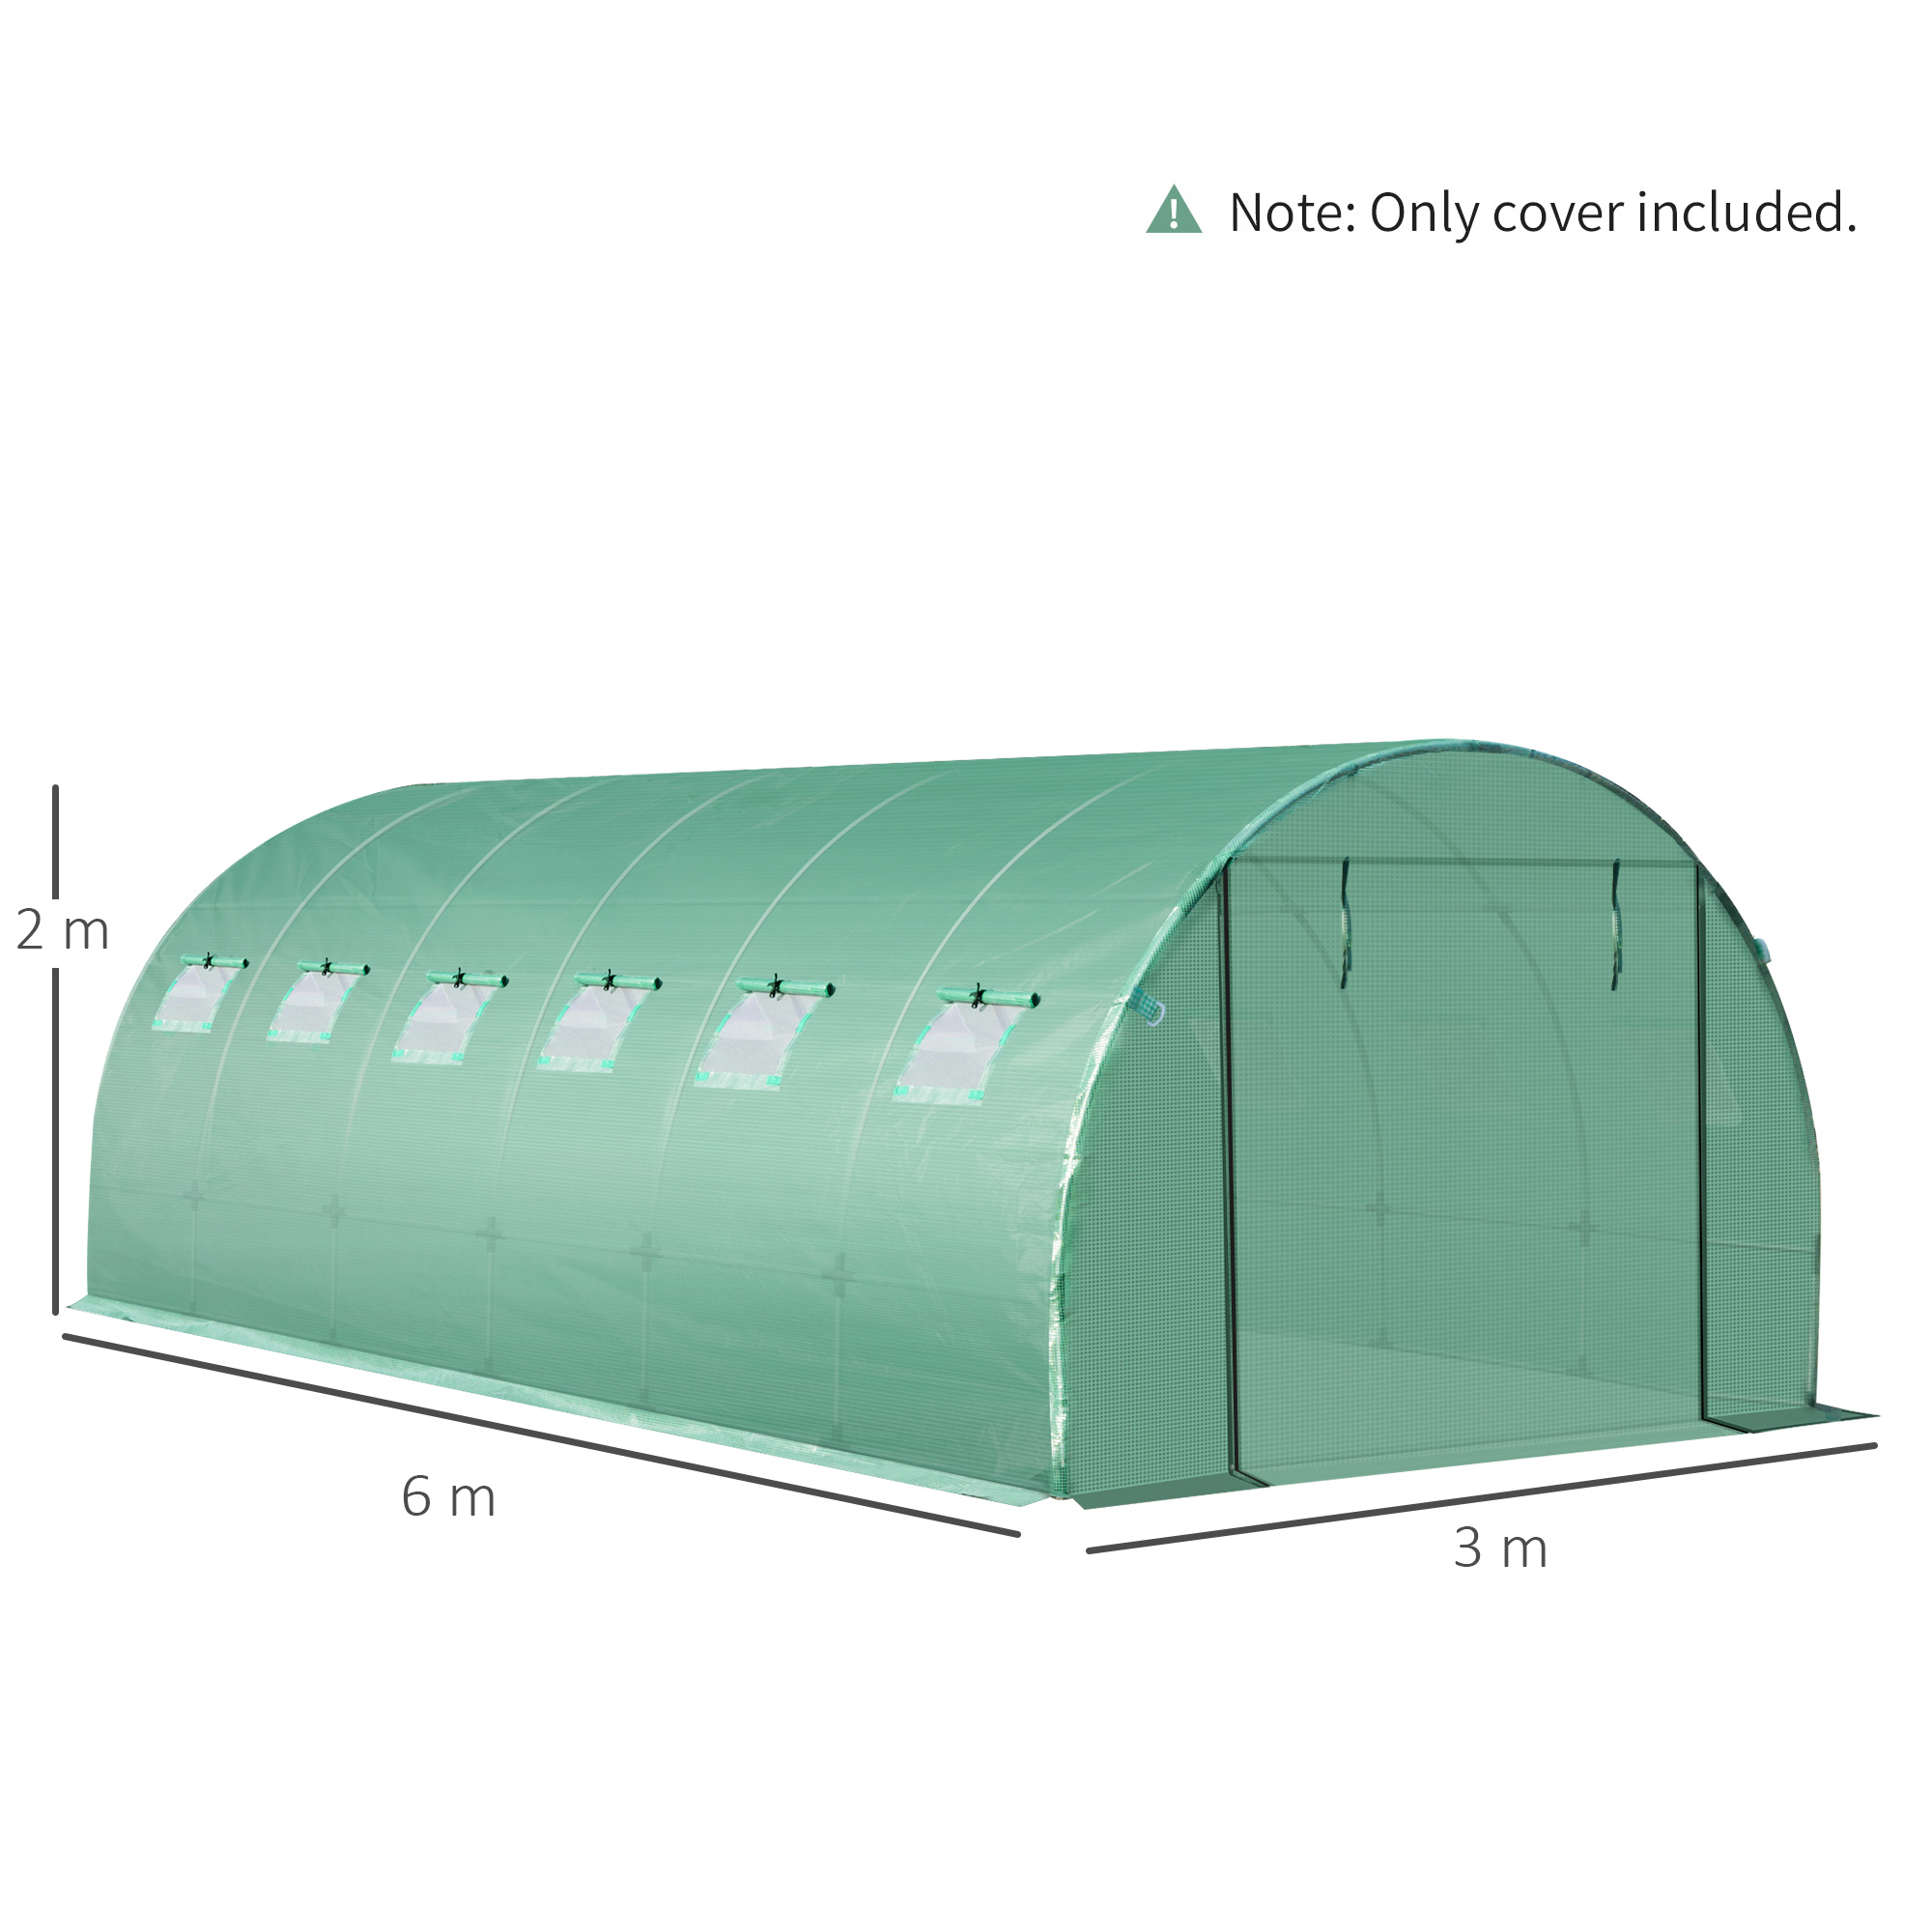 Indexbild 19 - Greenhouse-Replacement-Cover-ONLY-for-Tunnel-Walk-in-Greenhouse